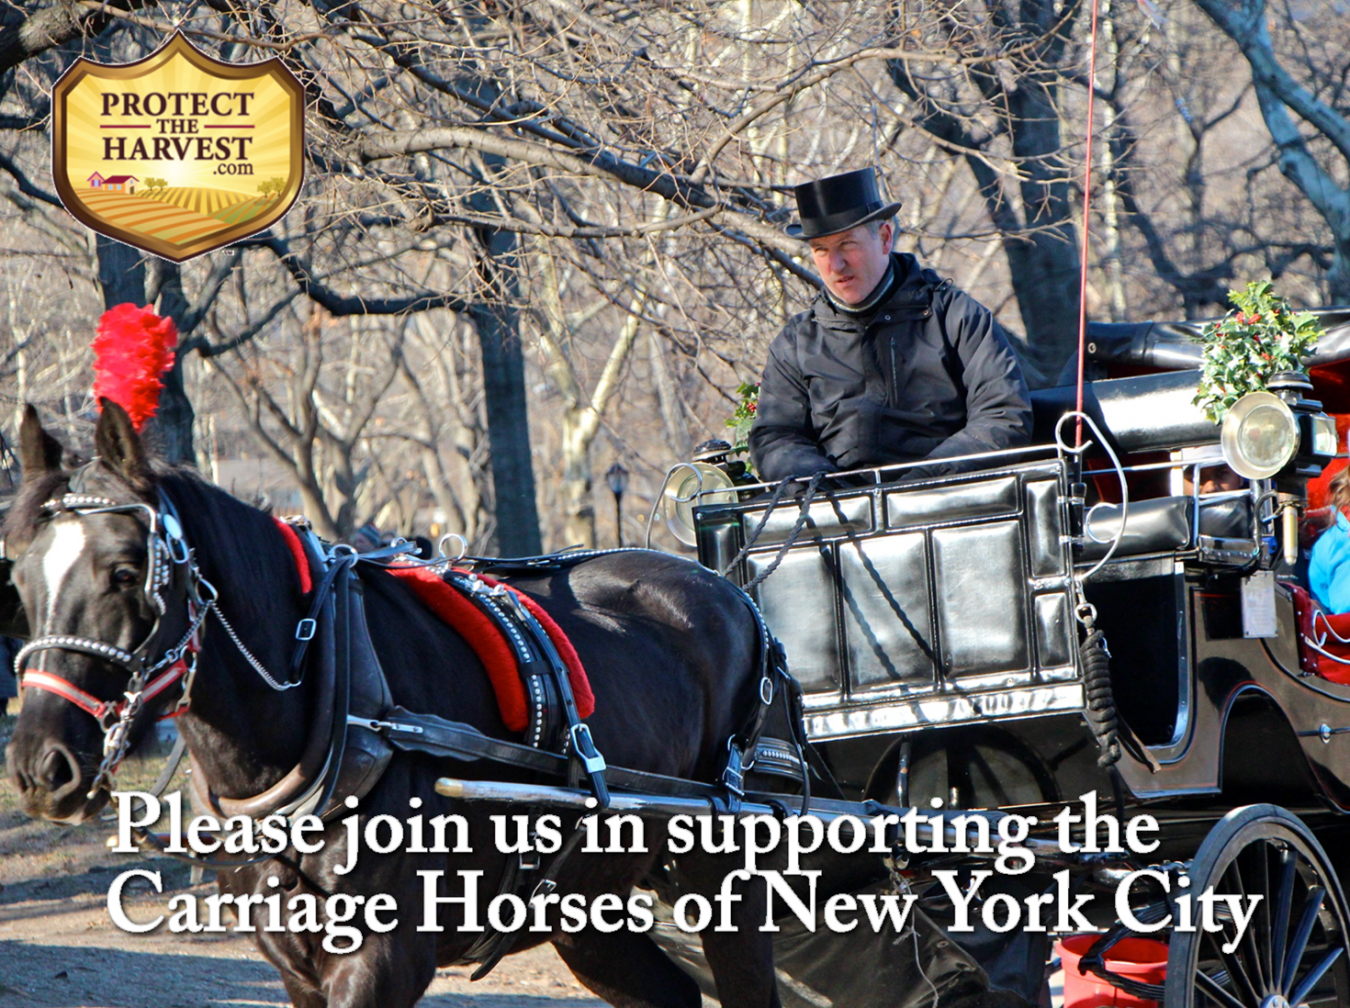 Carriage Horse Industry Needs Support